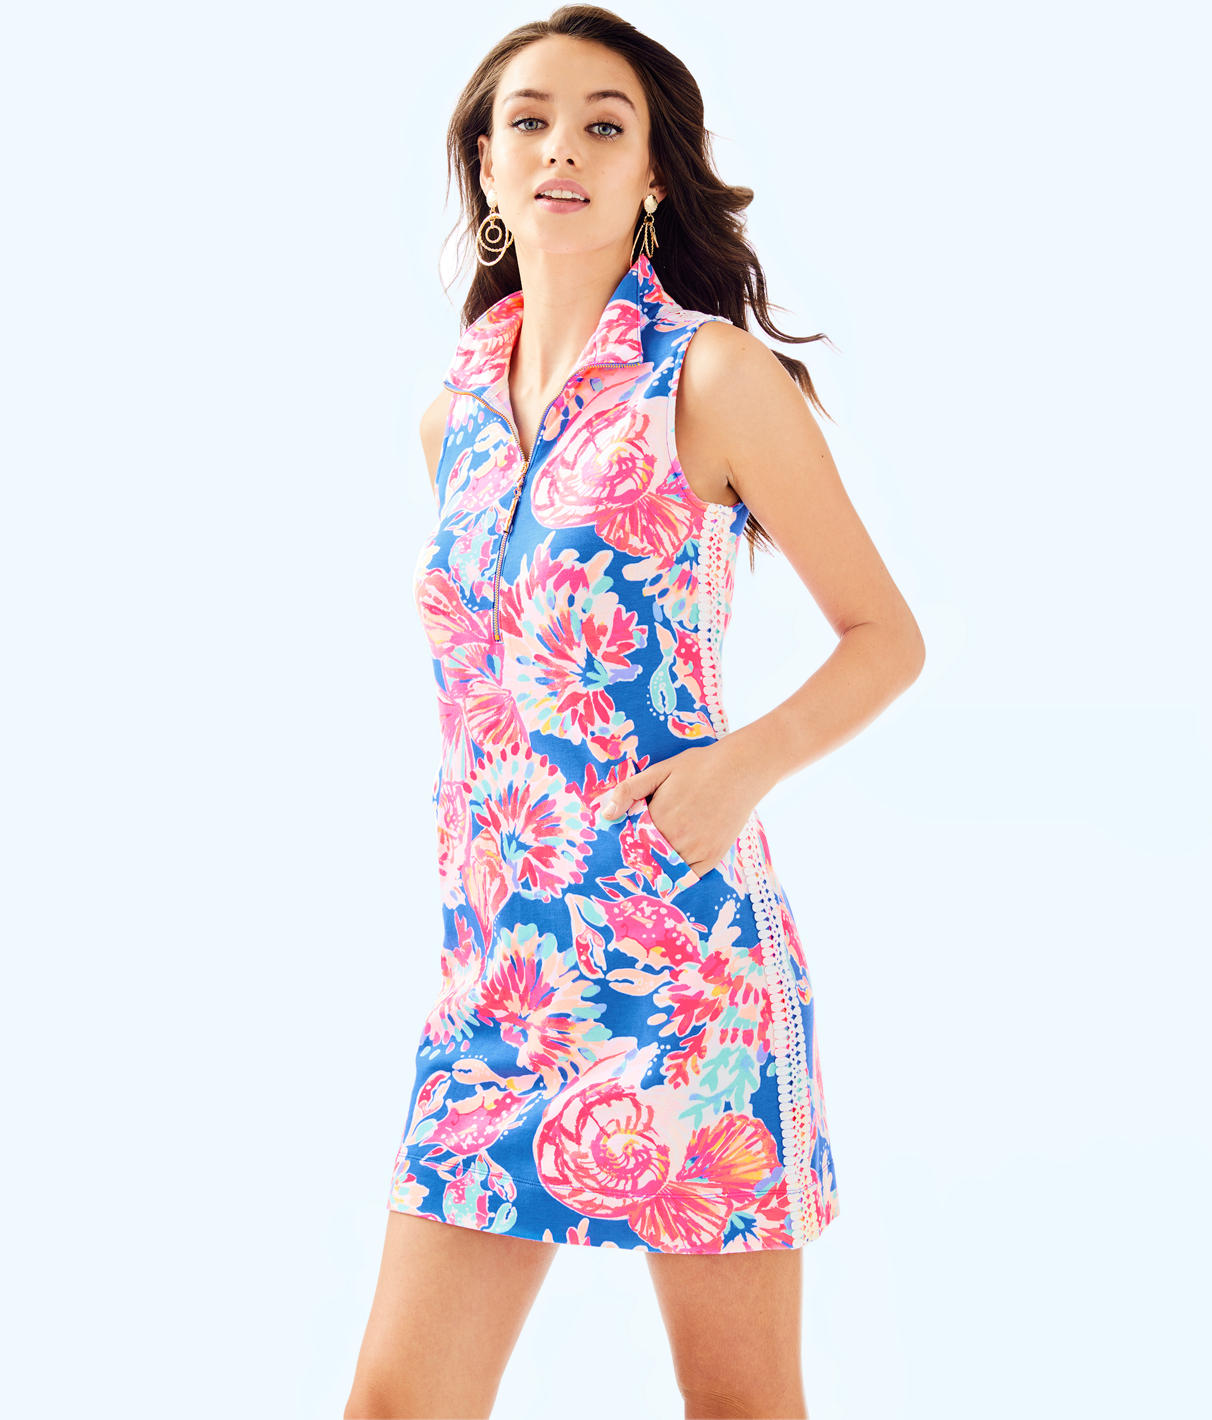 Lilly Pulitzer Lilly Pulitzer Womens Skipper Sleeveless Dress